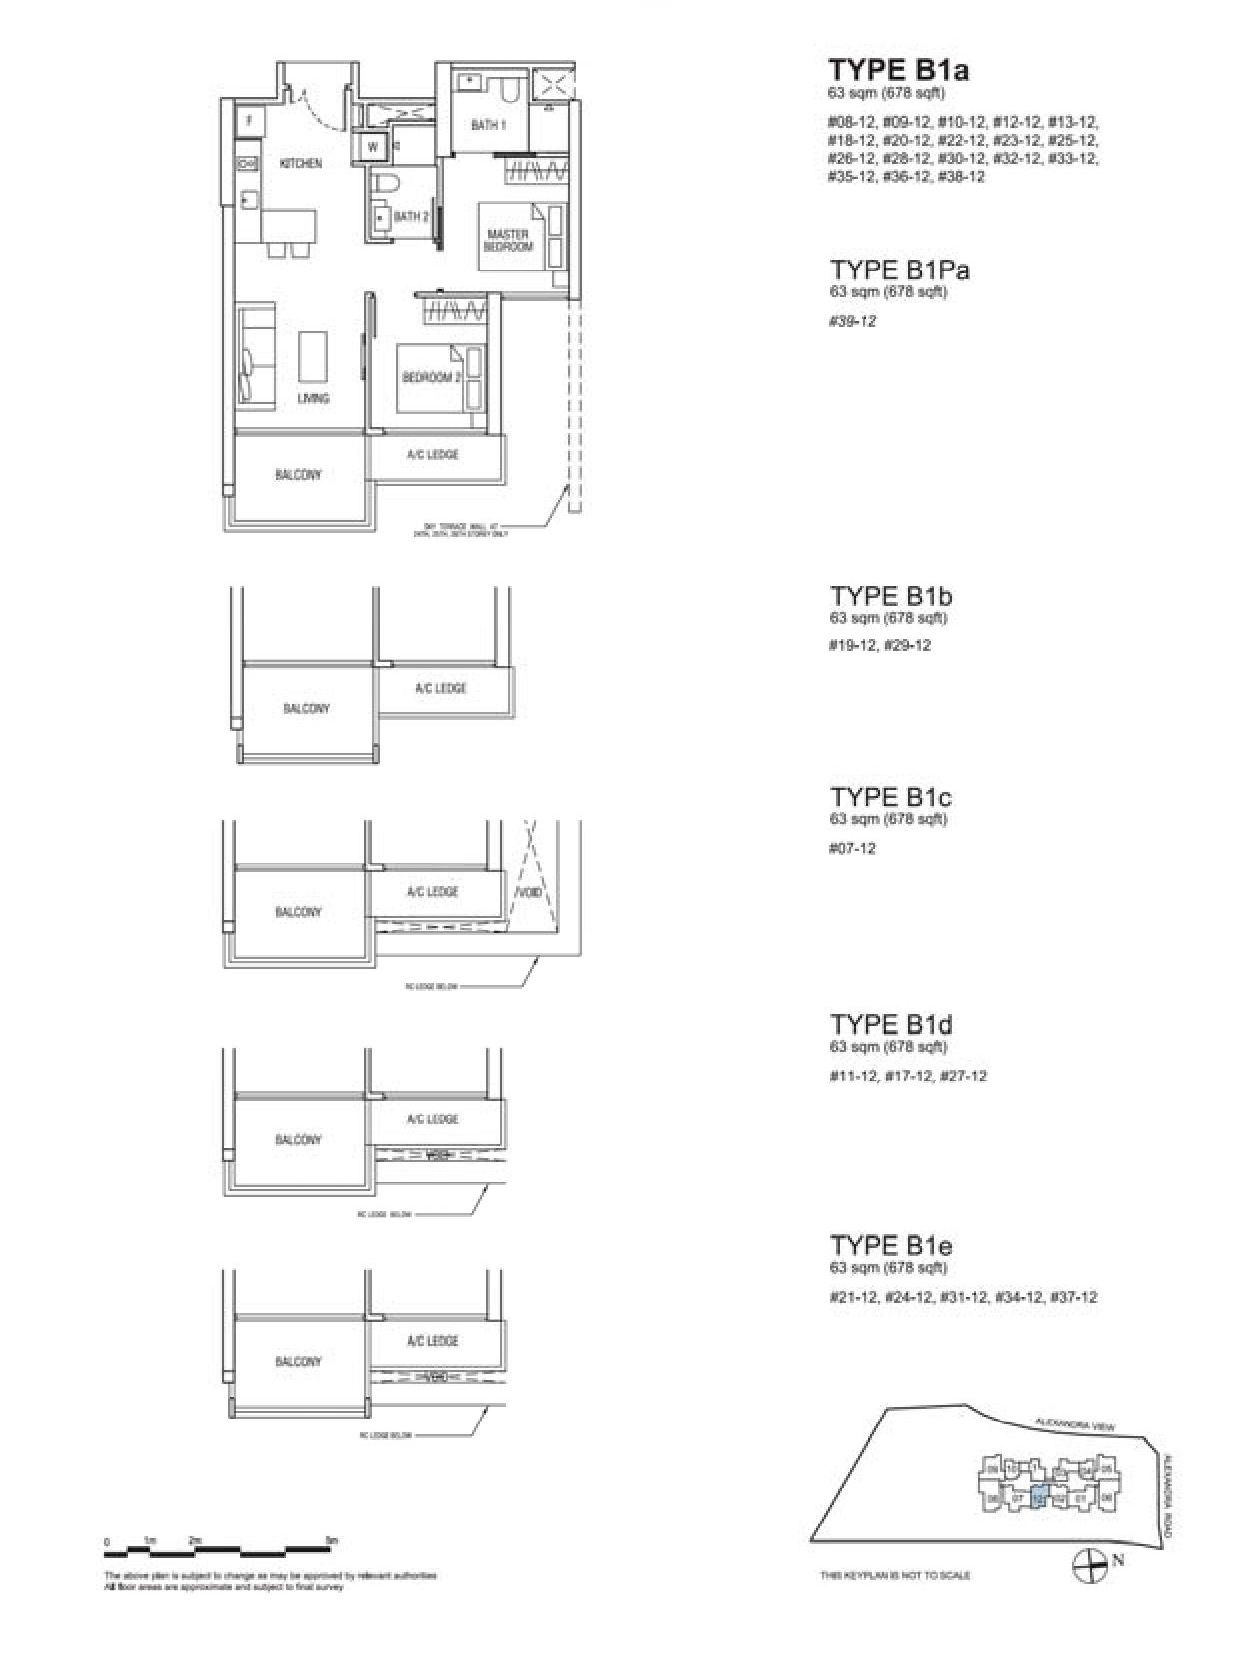 Alex Residences 2 Bedroom Type B1a, B1Pa, B1b, B1c, B1d, B1e Floor Plans